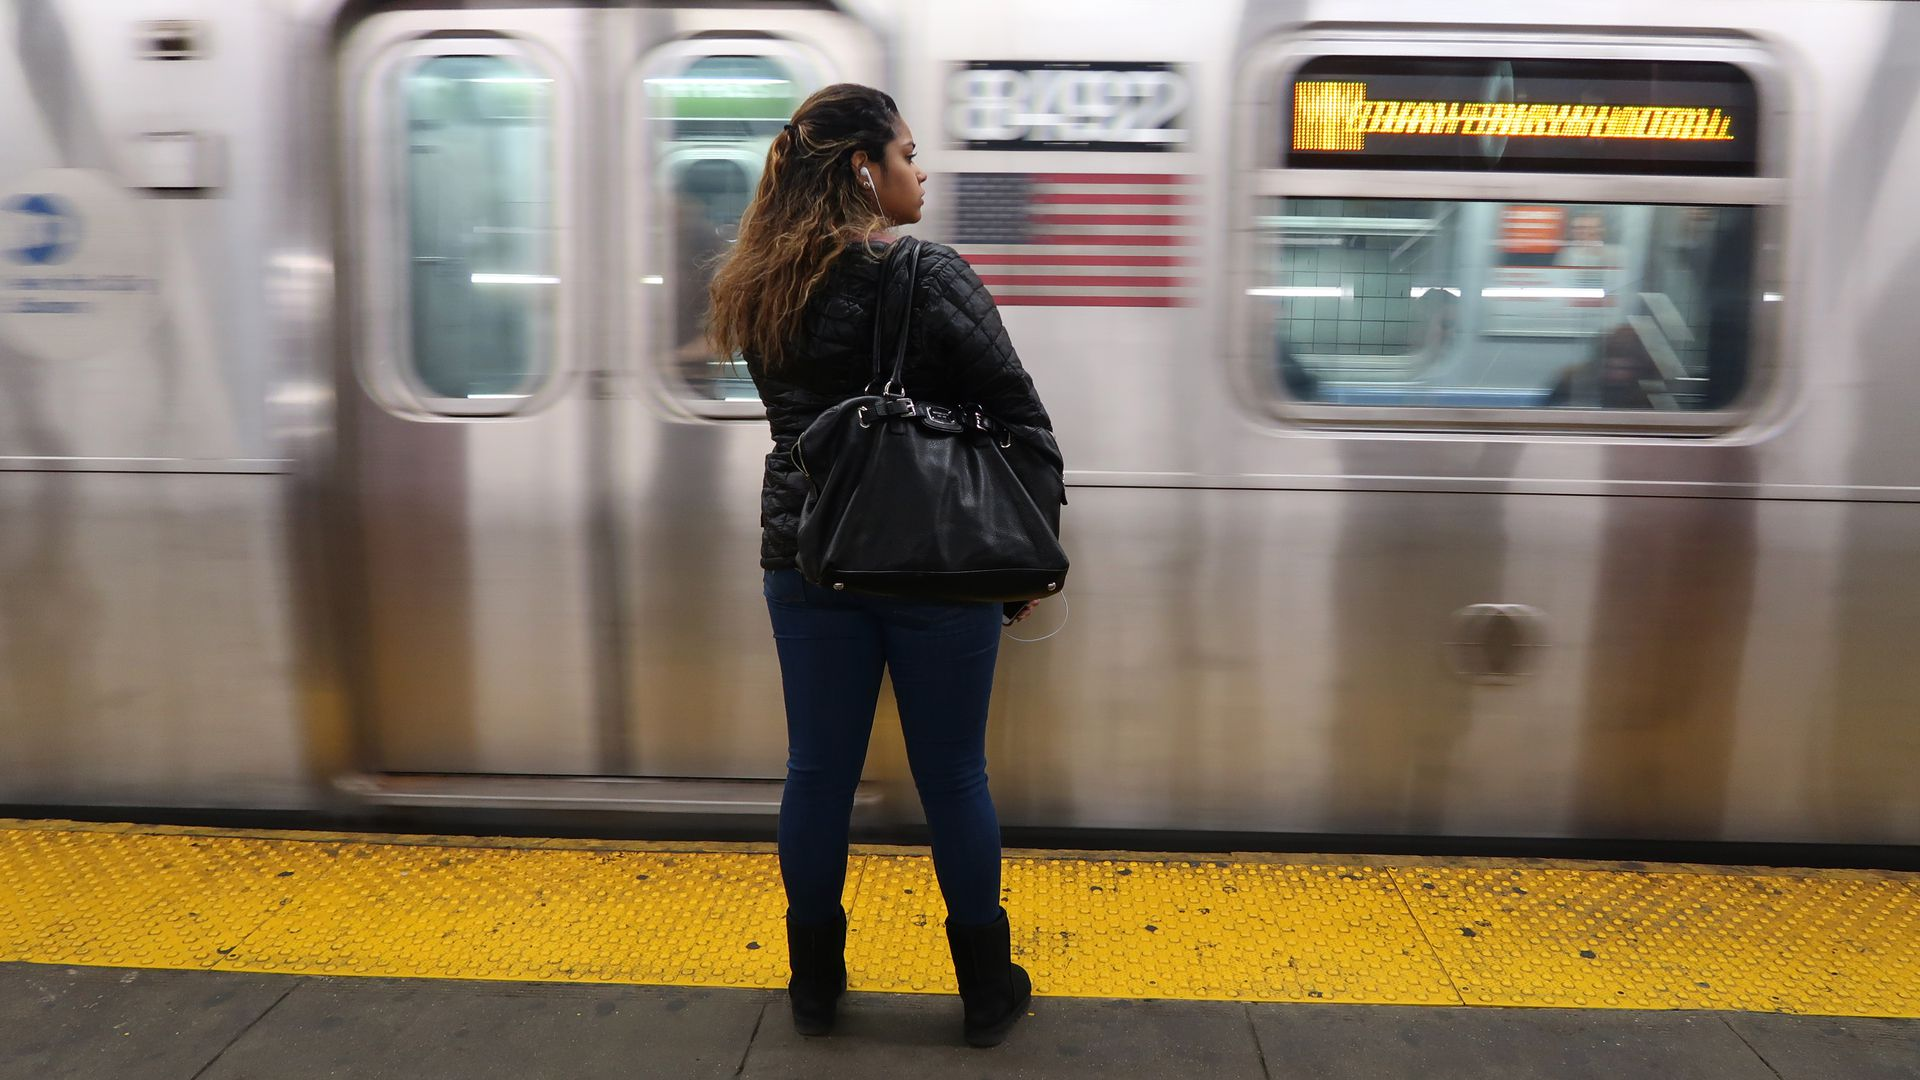 A woman stands near the yellow strip on the concrete ground as a subway train goes past her.